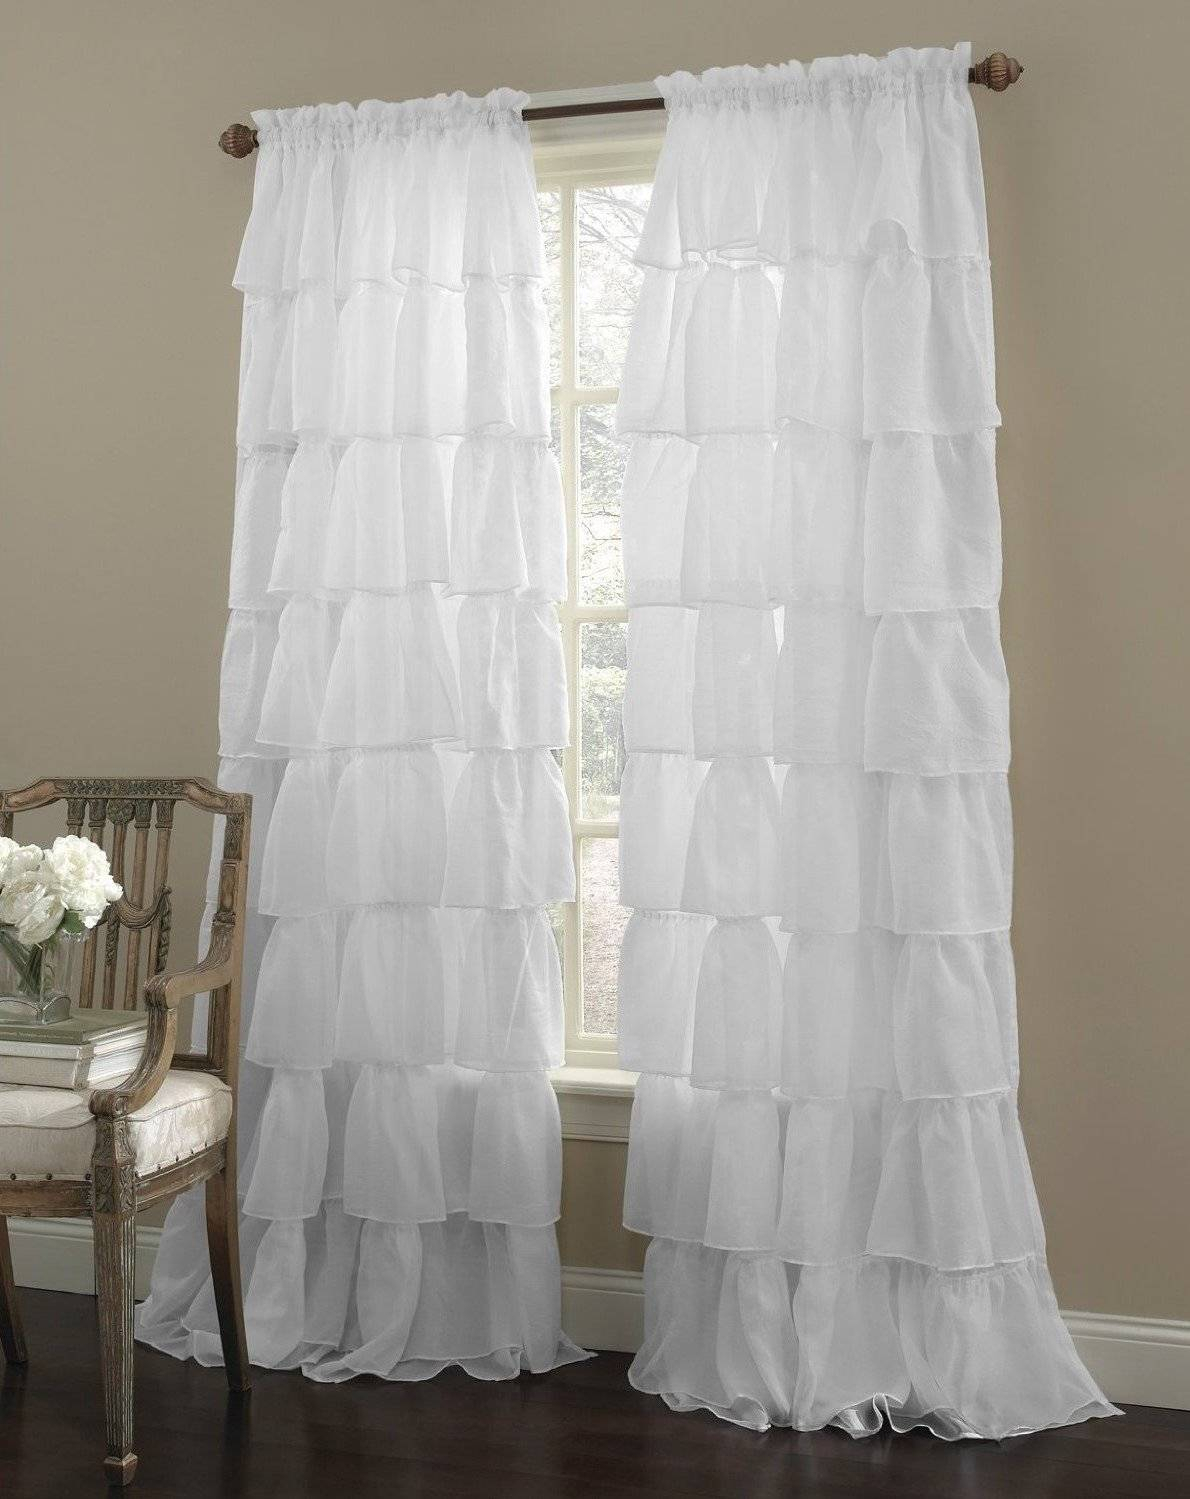 Wonderful Ruffled Window Curtains Piece Gypsy Shabby Chic In Chic Sheer Voile Vertical Ruffled Window Curtain Tiers (View 20 of 20)